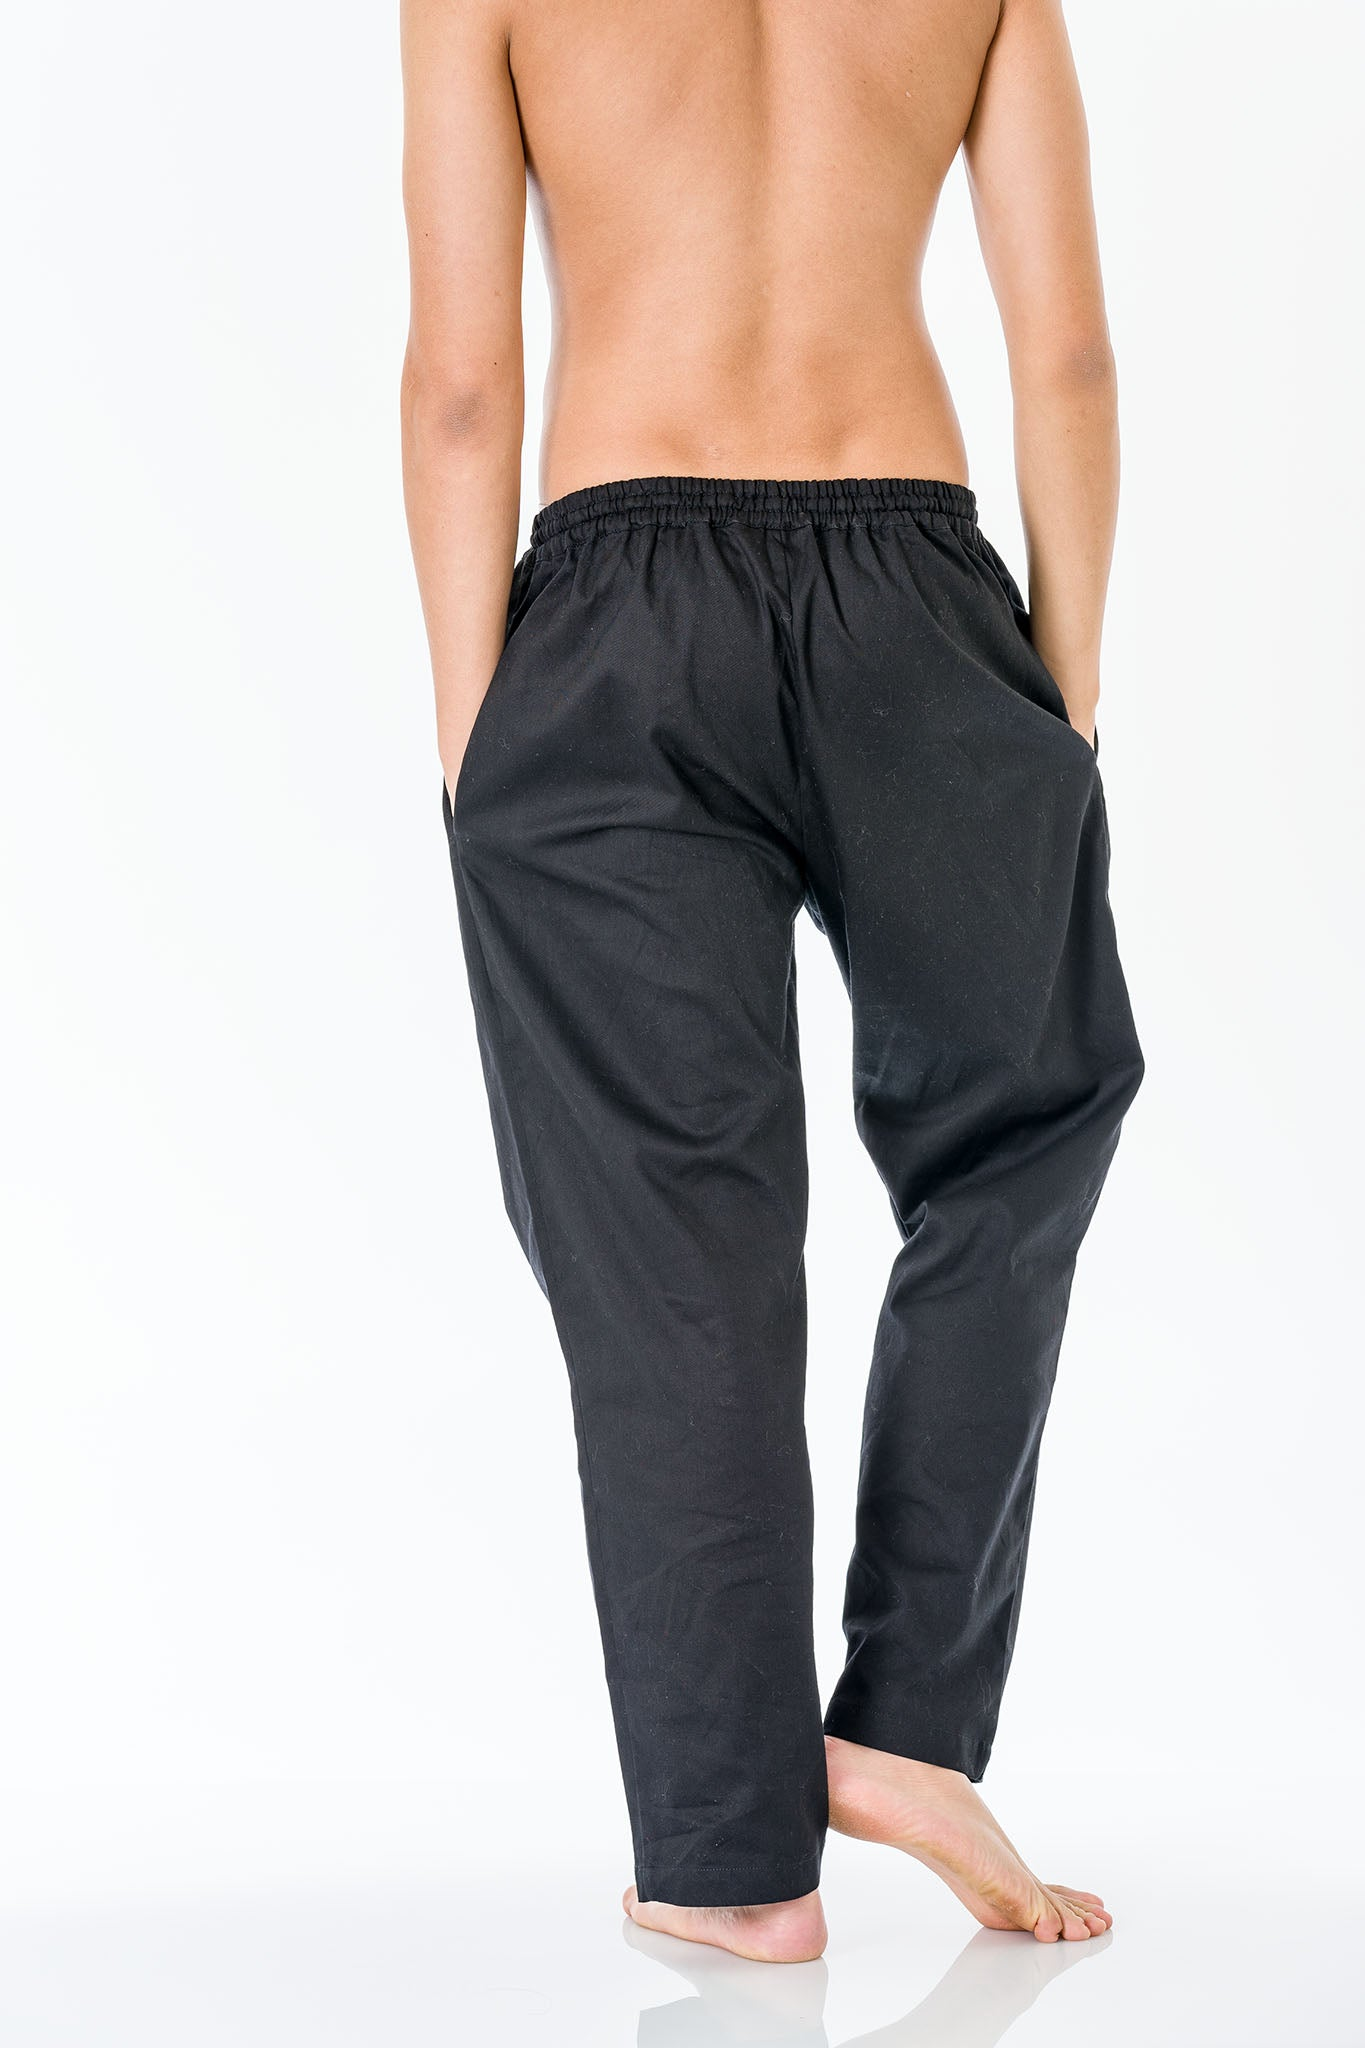 Midnight Black Pants